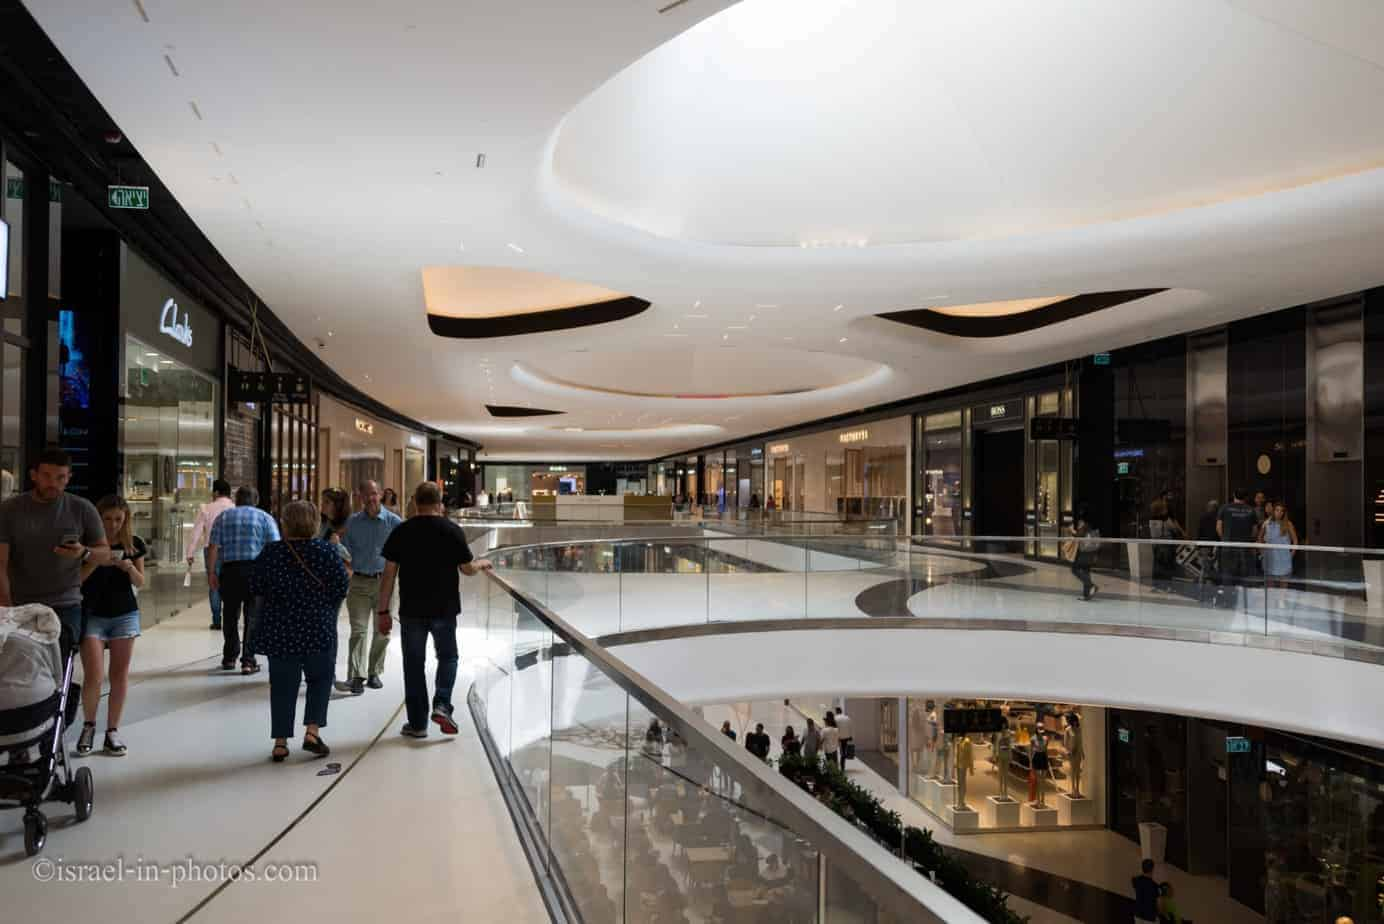 Tel Aviv walks #10 - TLV Fashion Mall